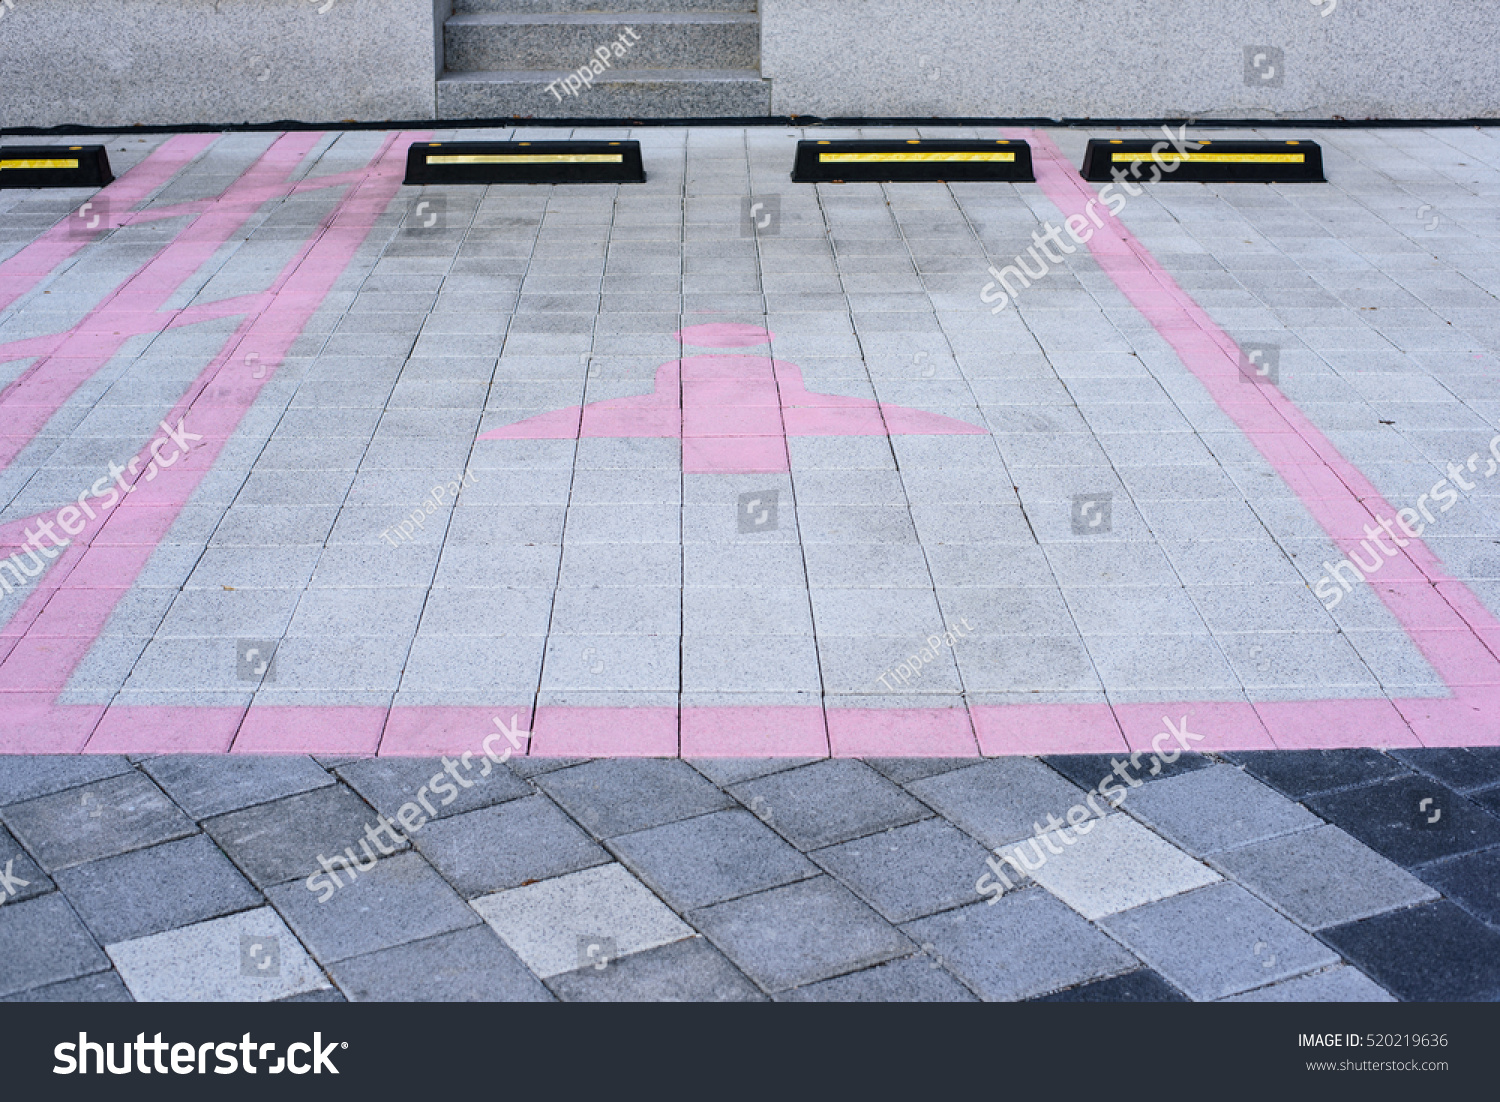 Car parking area available lady pink stock photo 520219636 car parking area available for lady with pink symbol of lady on outdoor concrete block floor buycottarizona